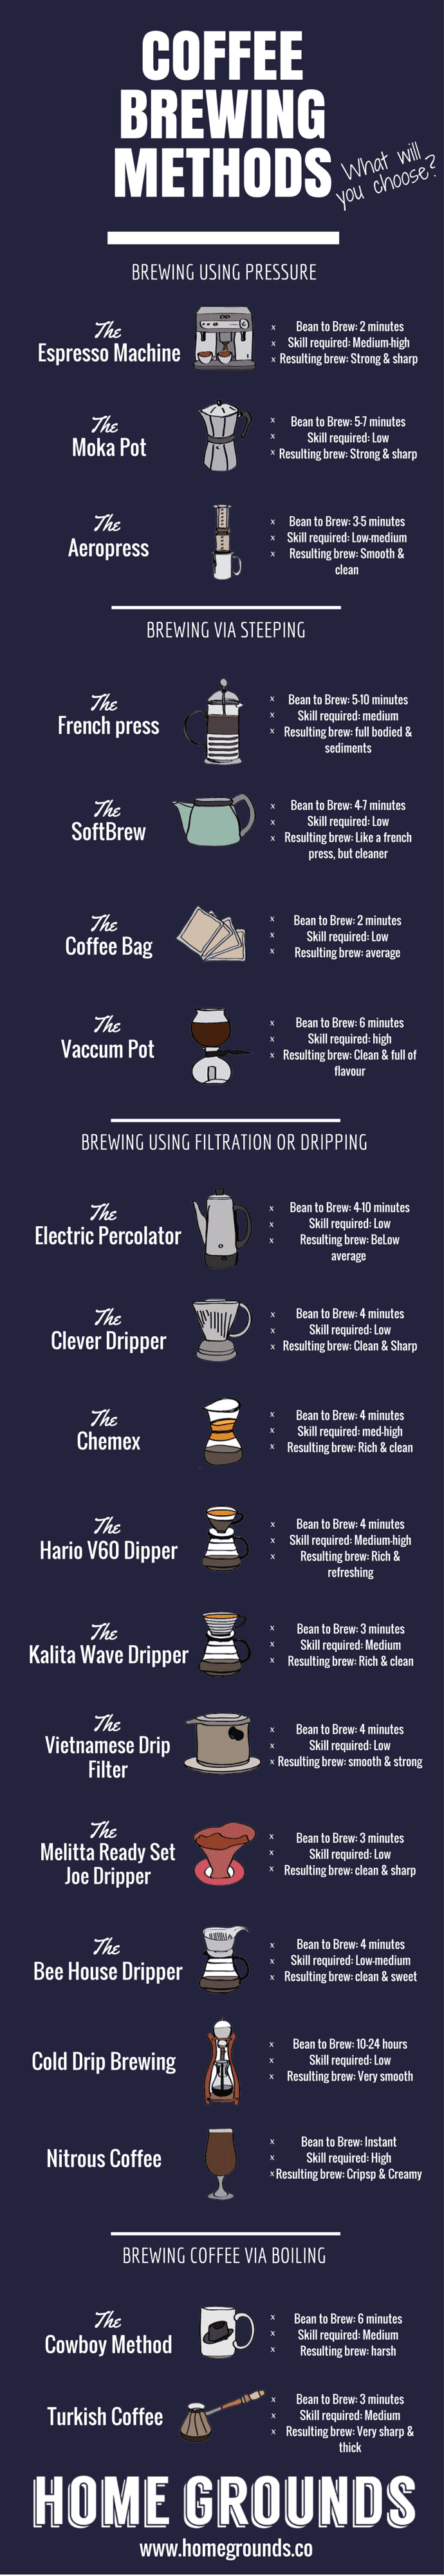 coffee brewing methods poster - the complete list of ways to make coffee in a list.